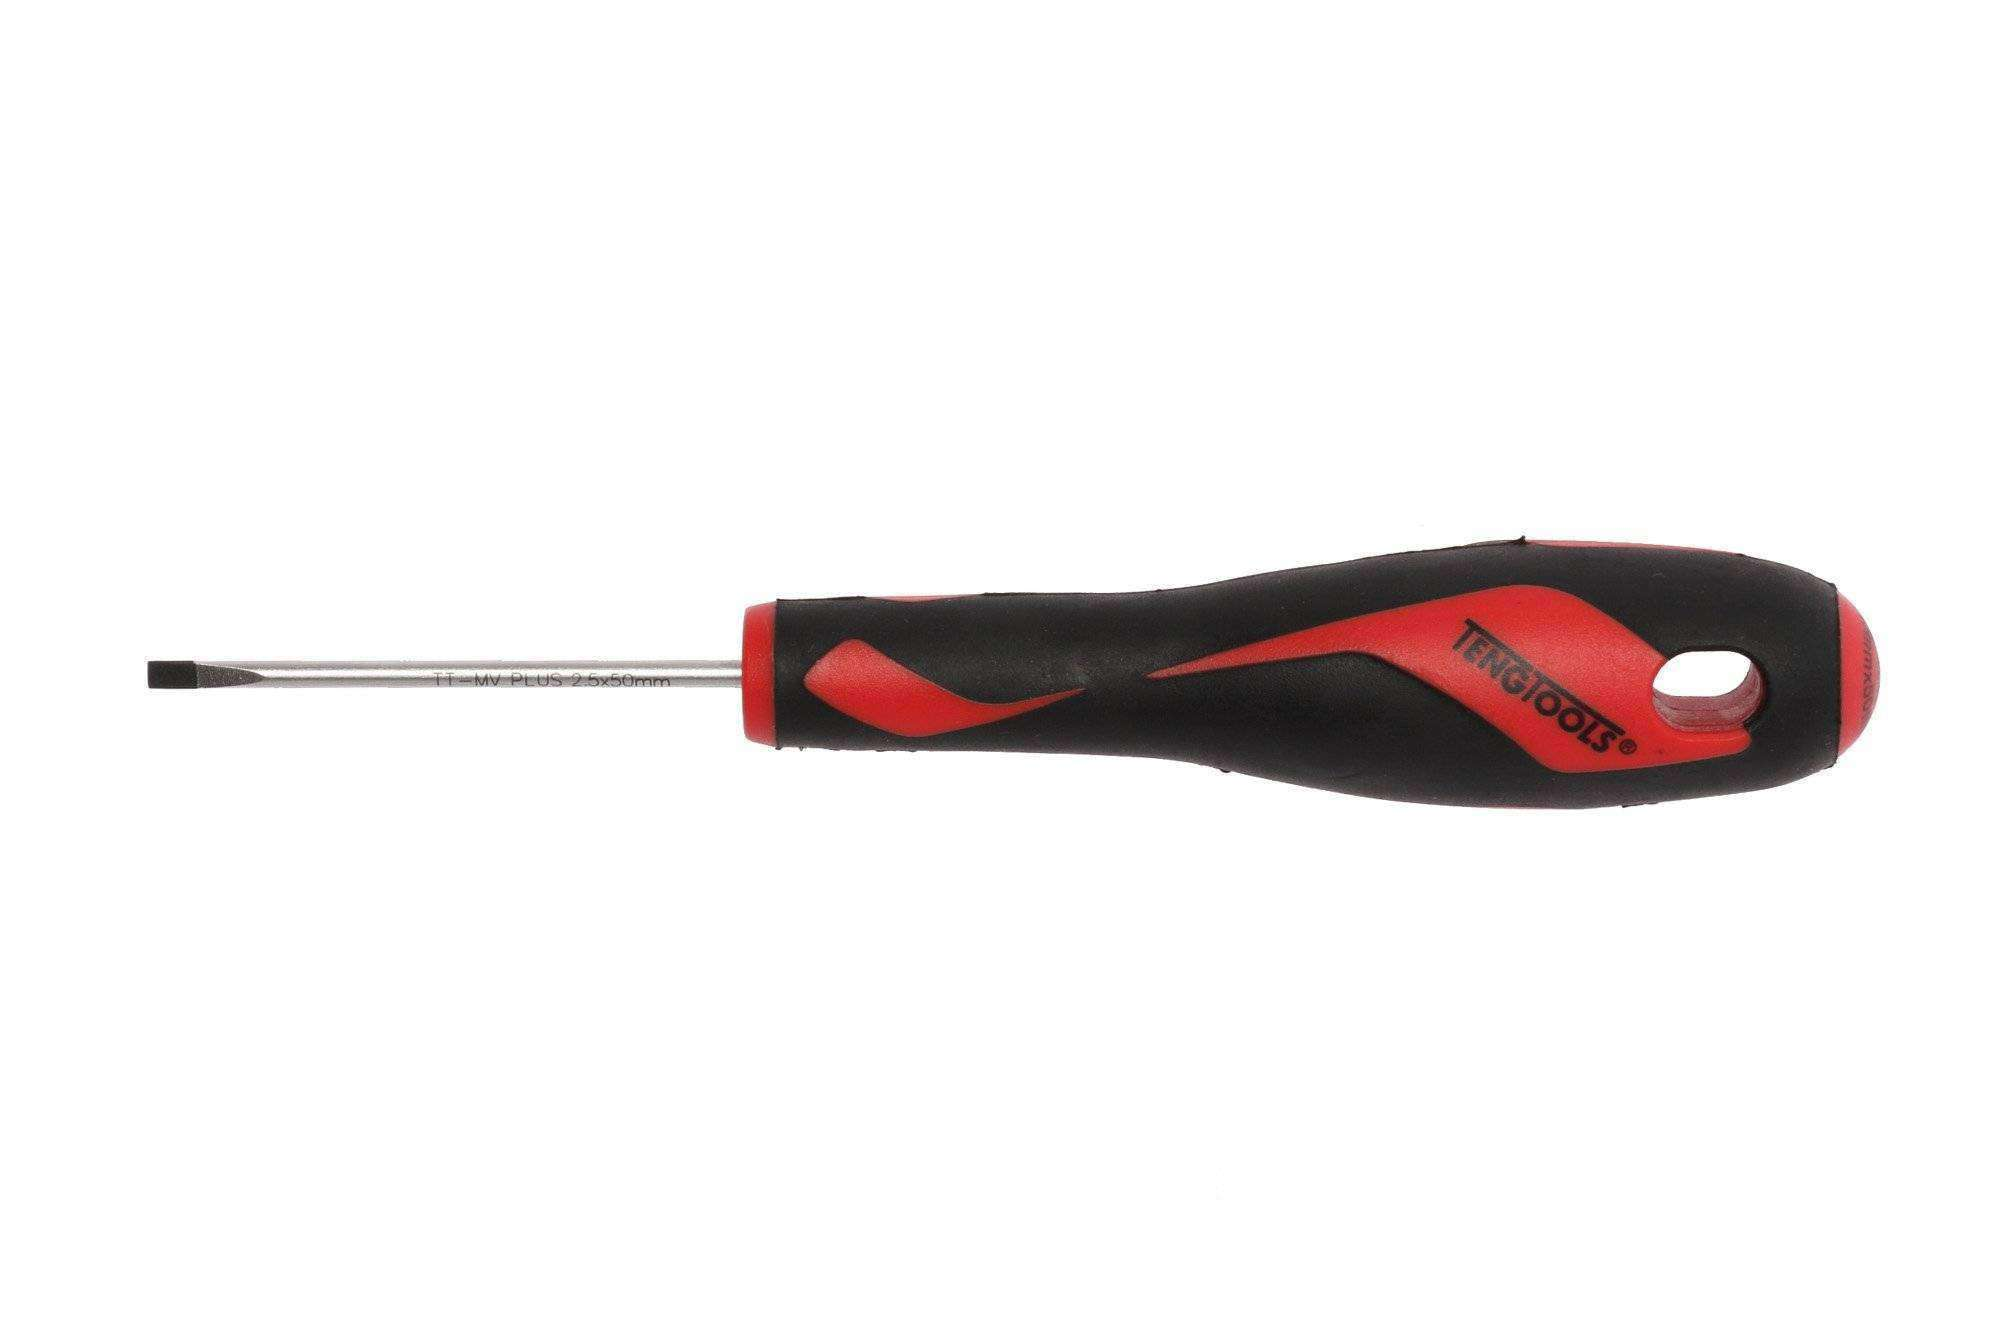 Teng Tools - 2.5 x 50mm Flat Type Screwdriver - MD914N - Teng Tools USA